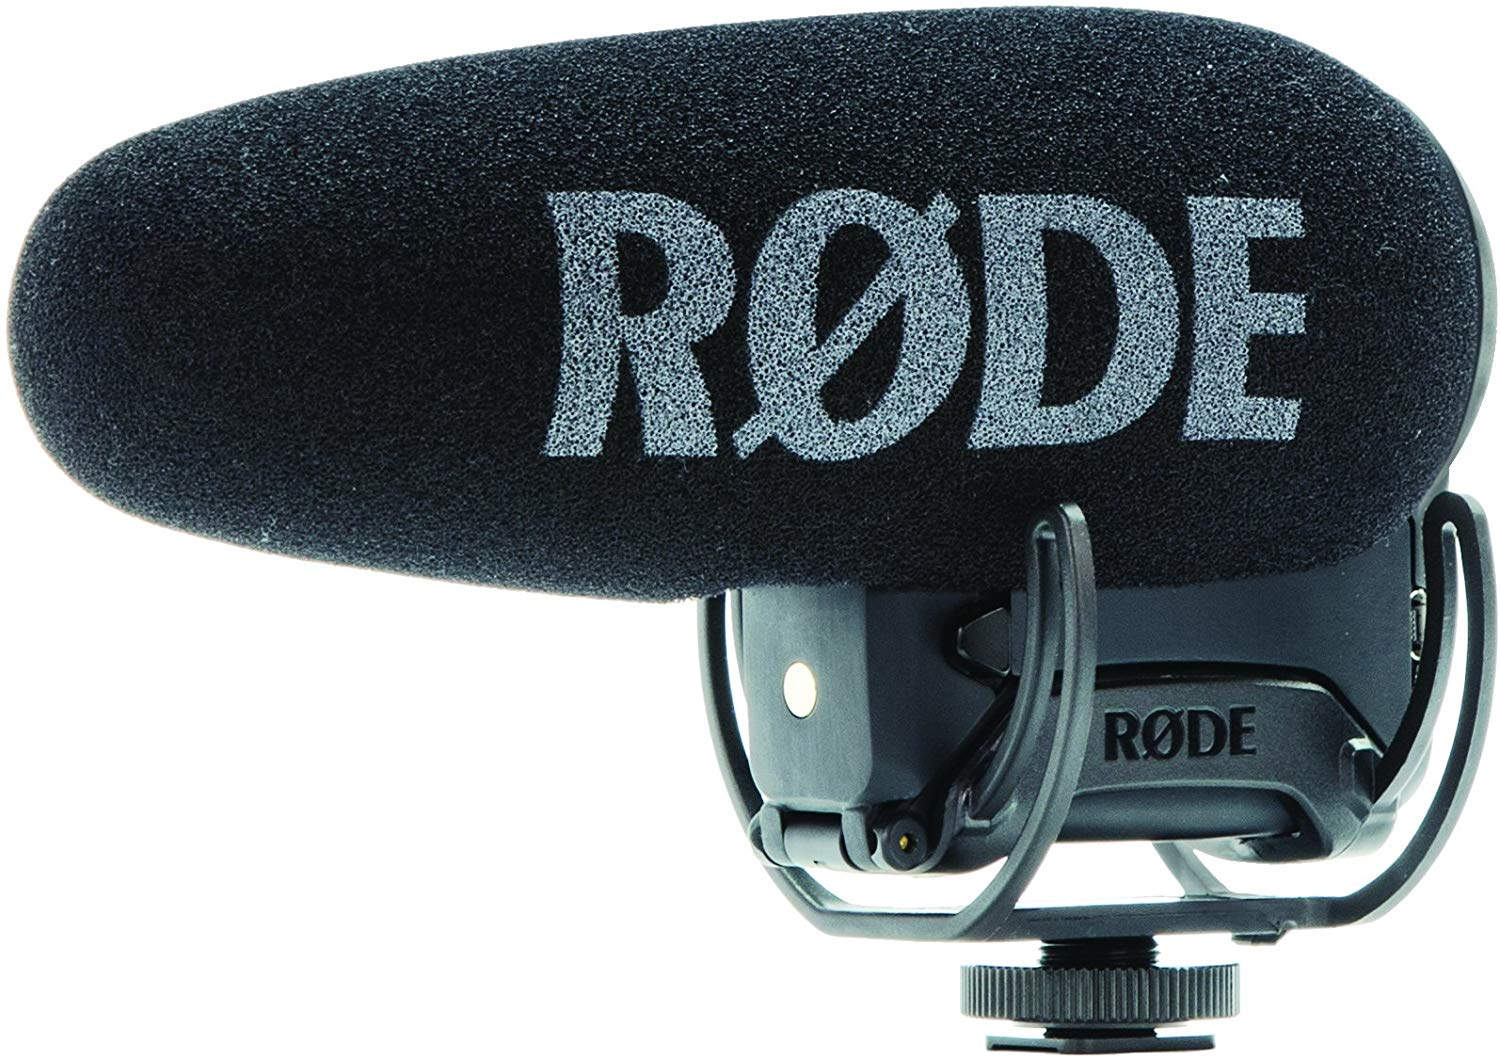 Rhode VideoMic pro+ Compact Directional On-Camera Shotgun Condenser Microphone